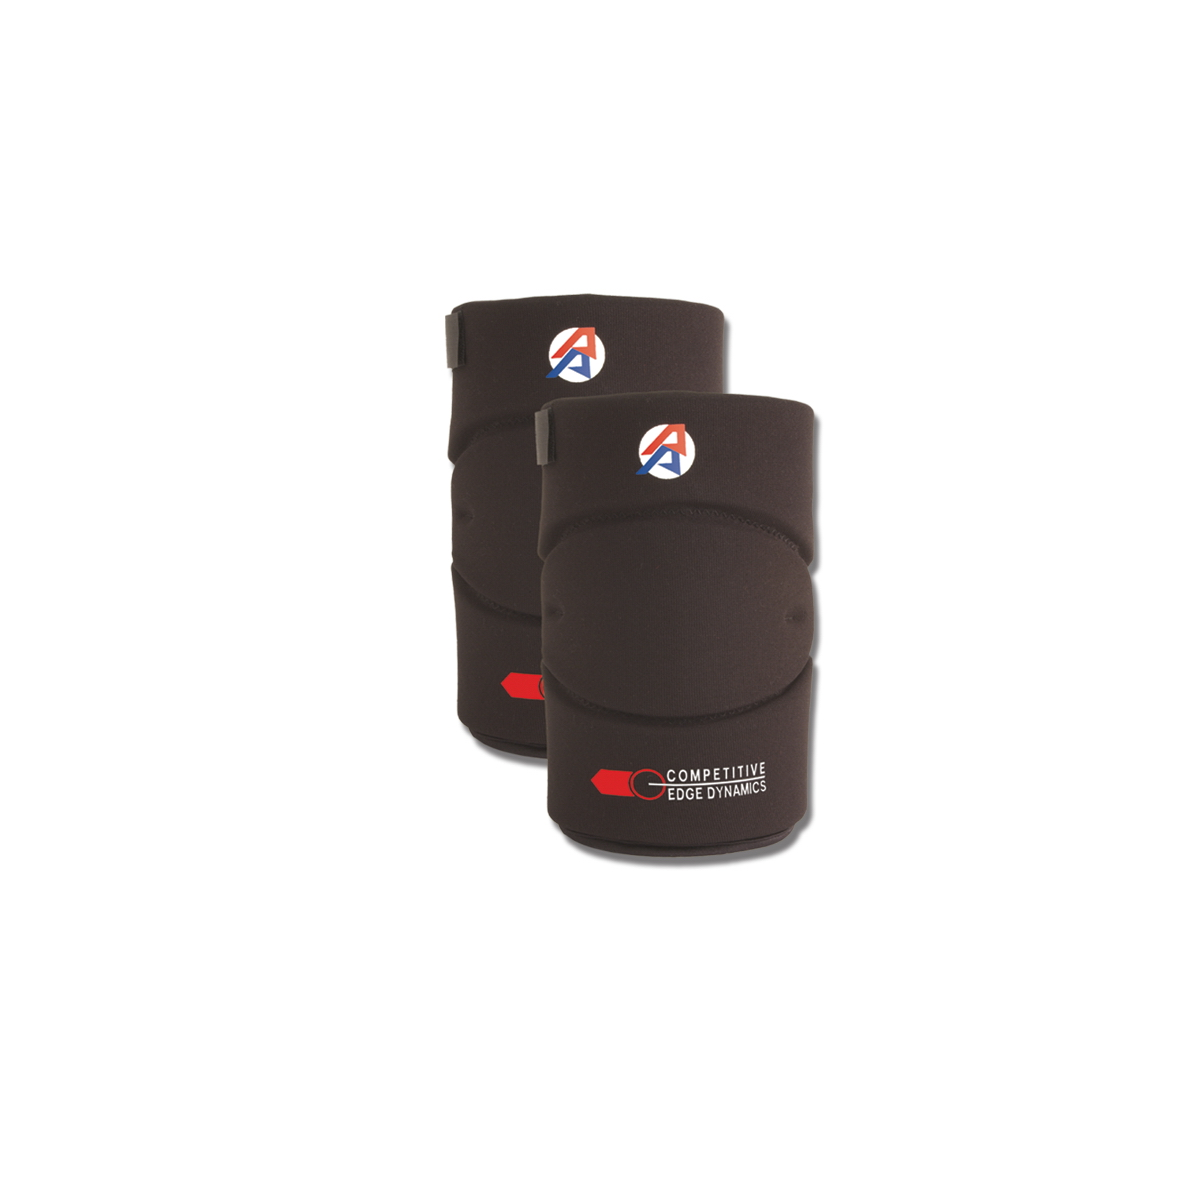 DAA #100043 CED knee Guards